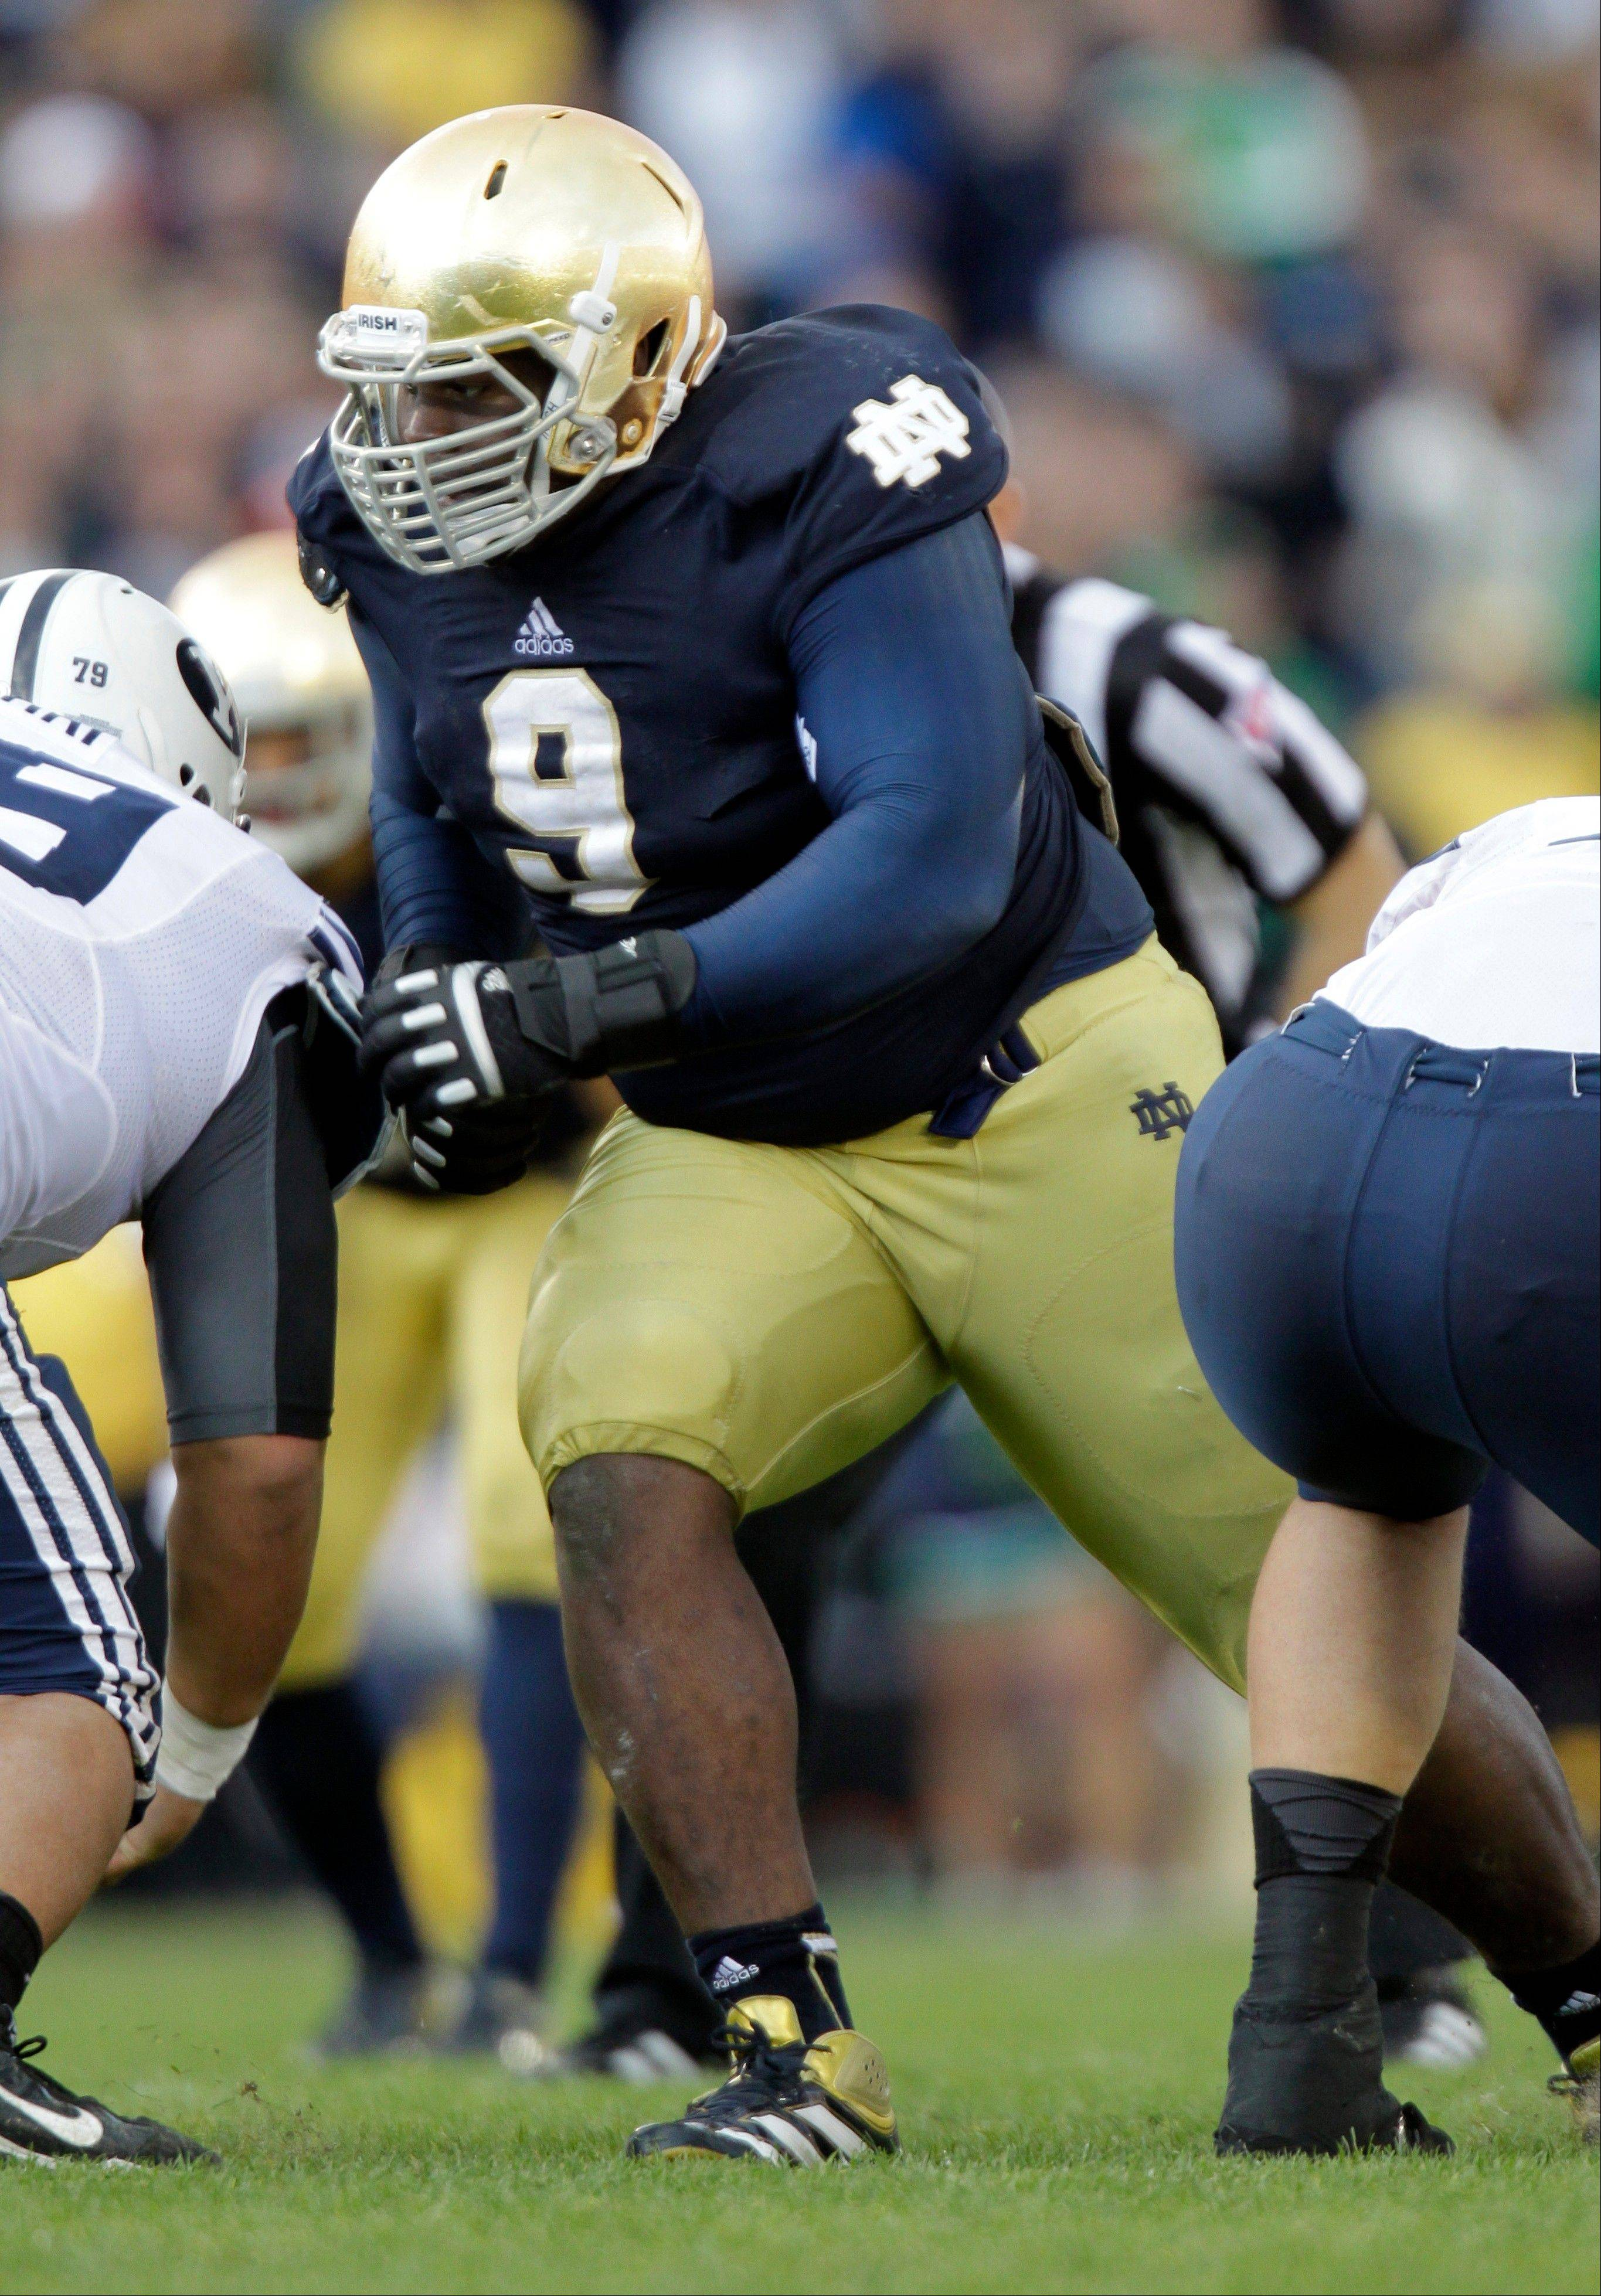 Notre Dame nose guard Louis Nix III has one year of playing eligibility left.